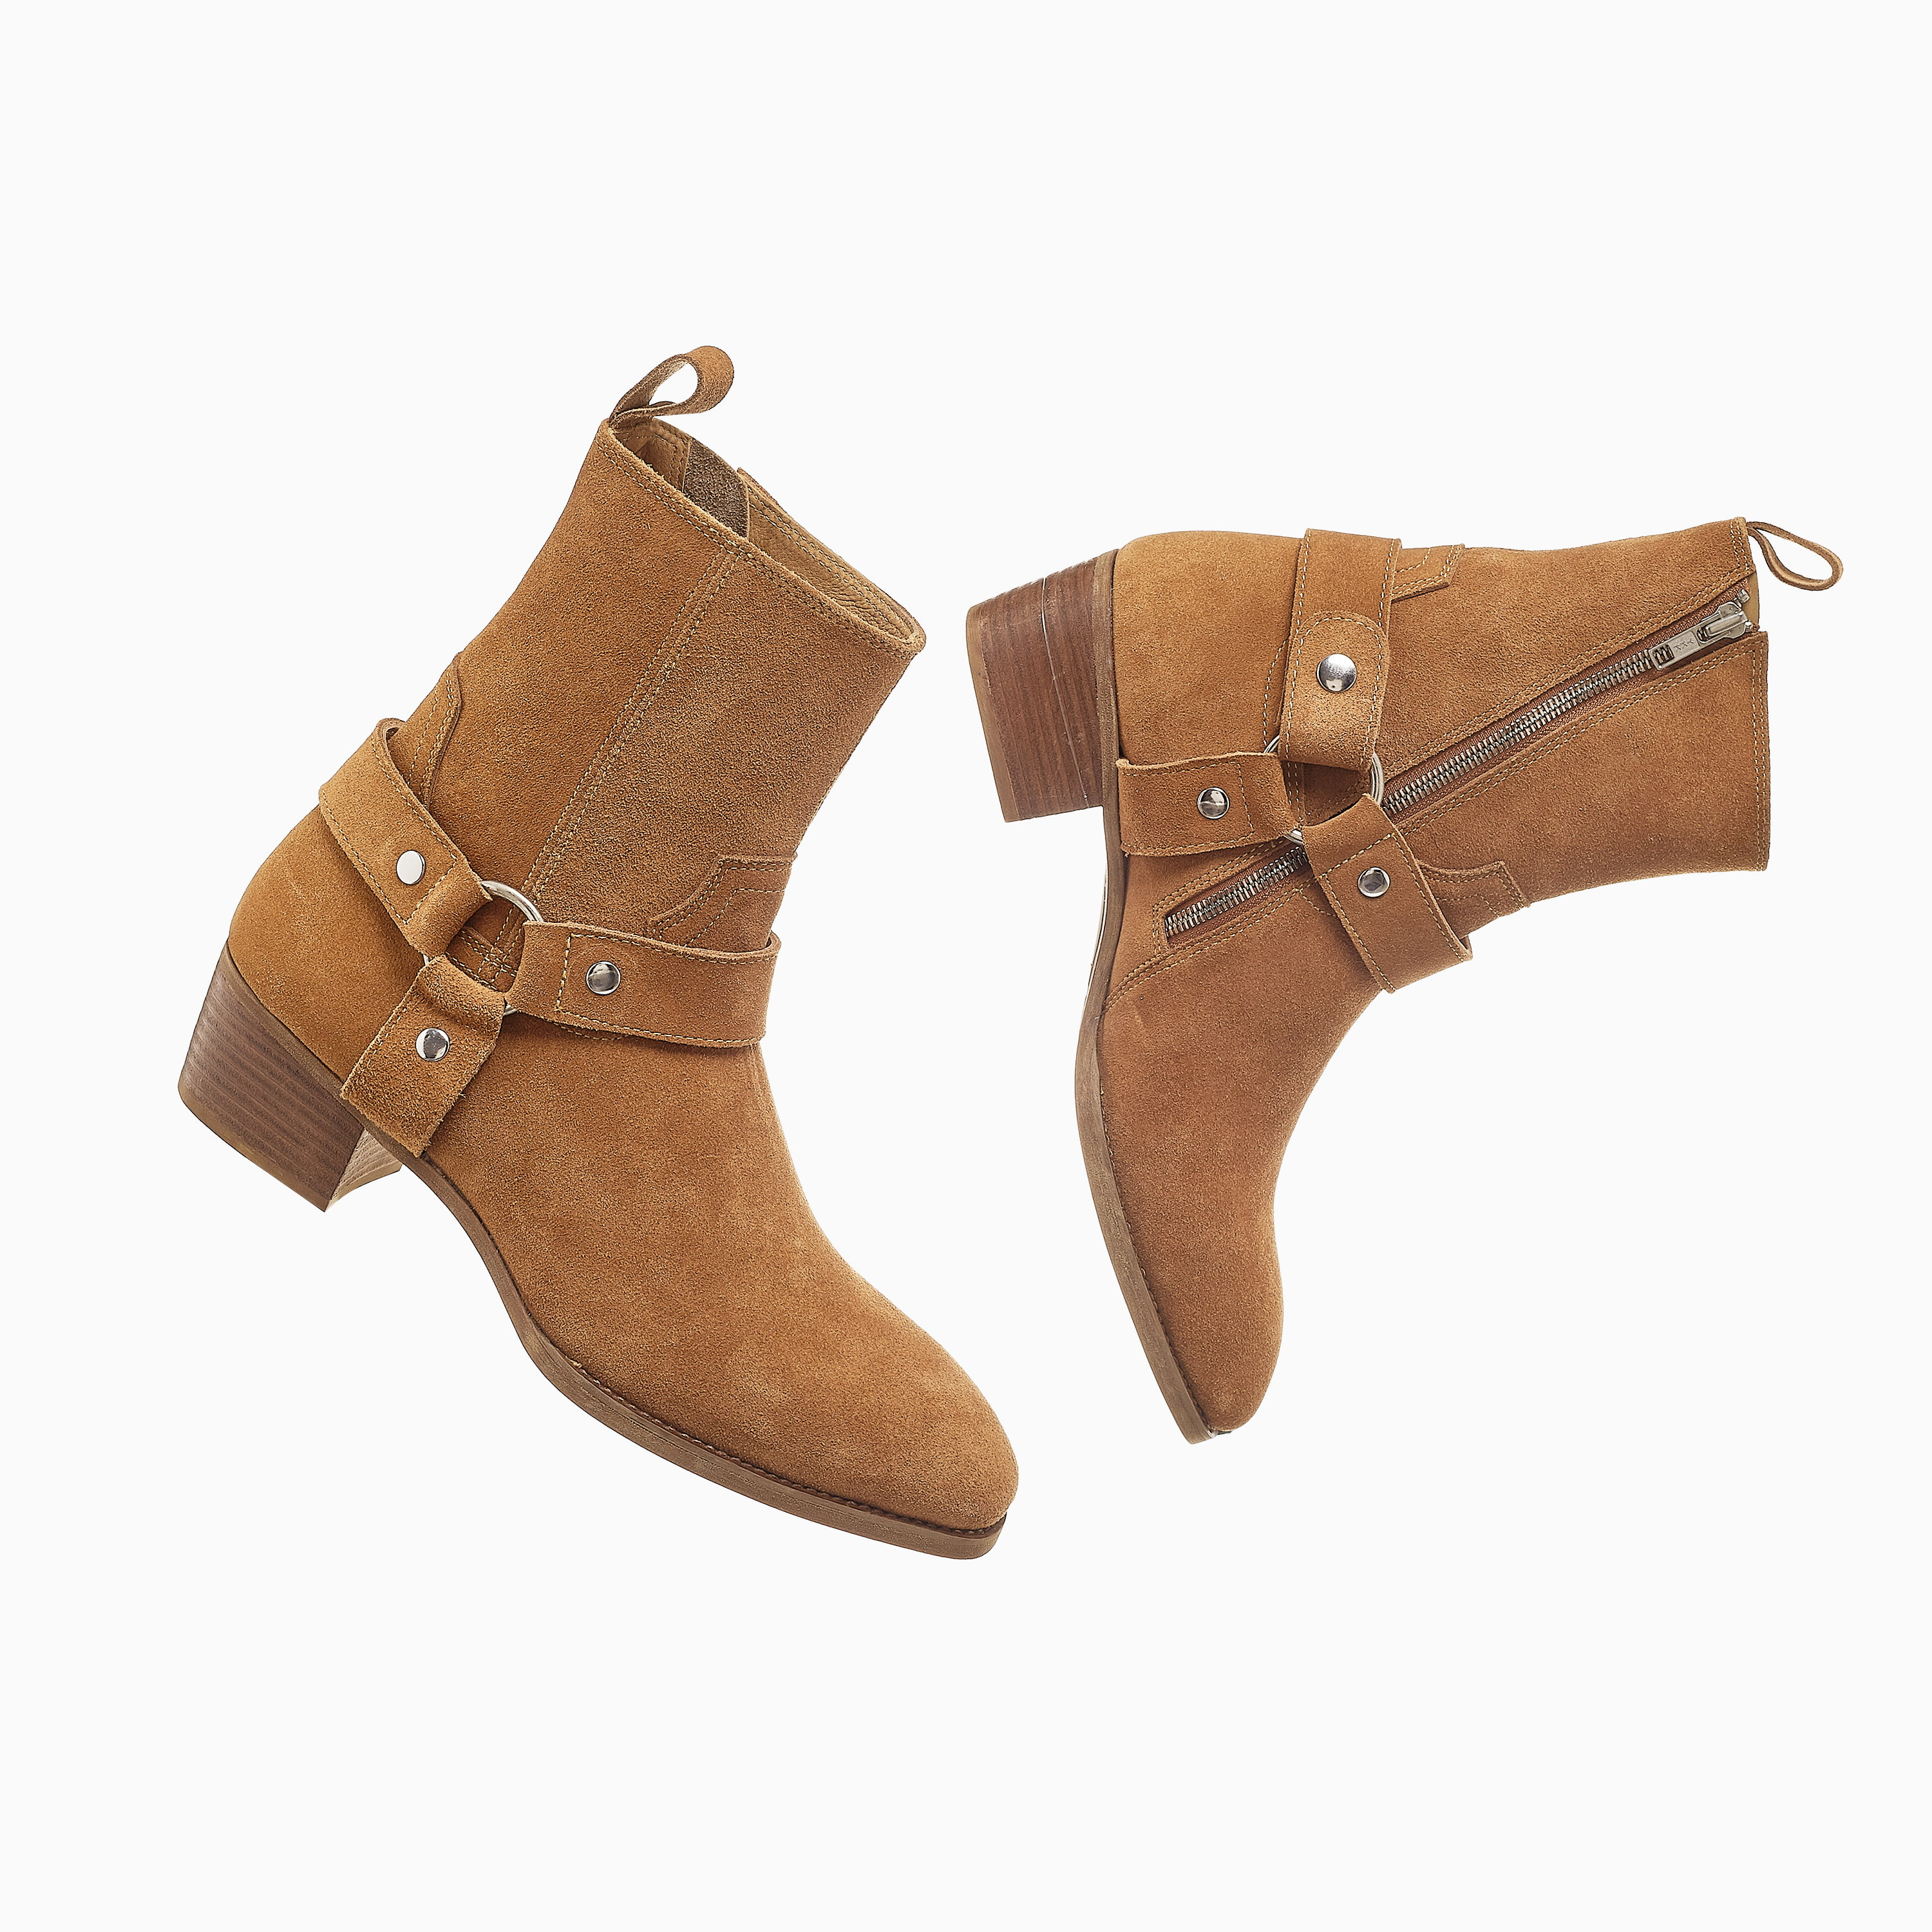 Suede Harness Boots In Tobacco Suede Harness Boots In Tobaco SS2020 3 1